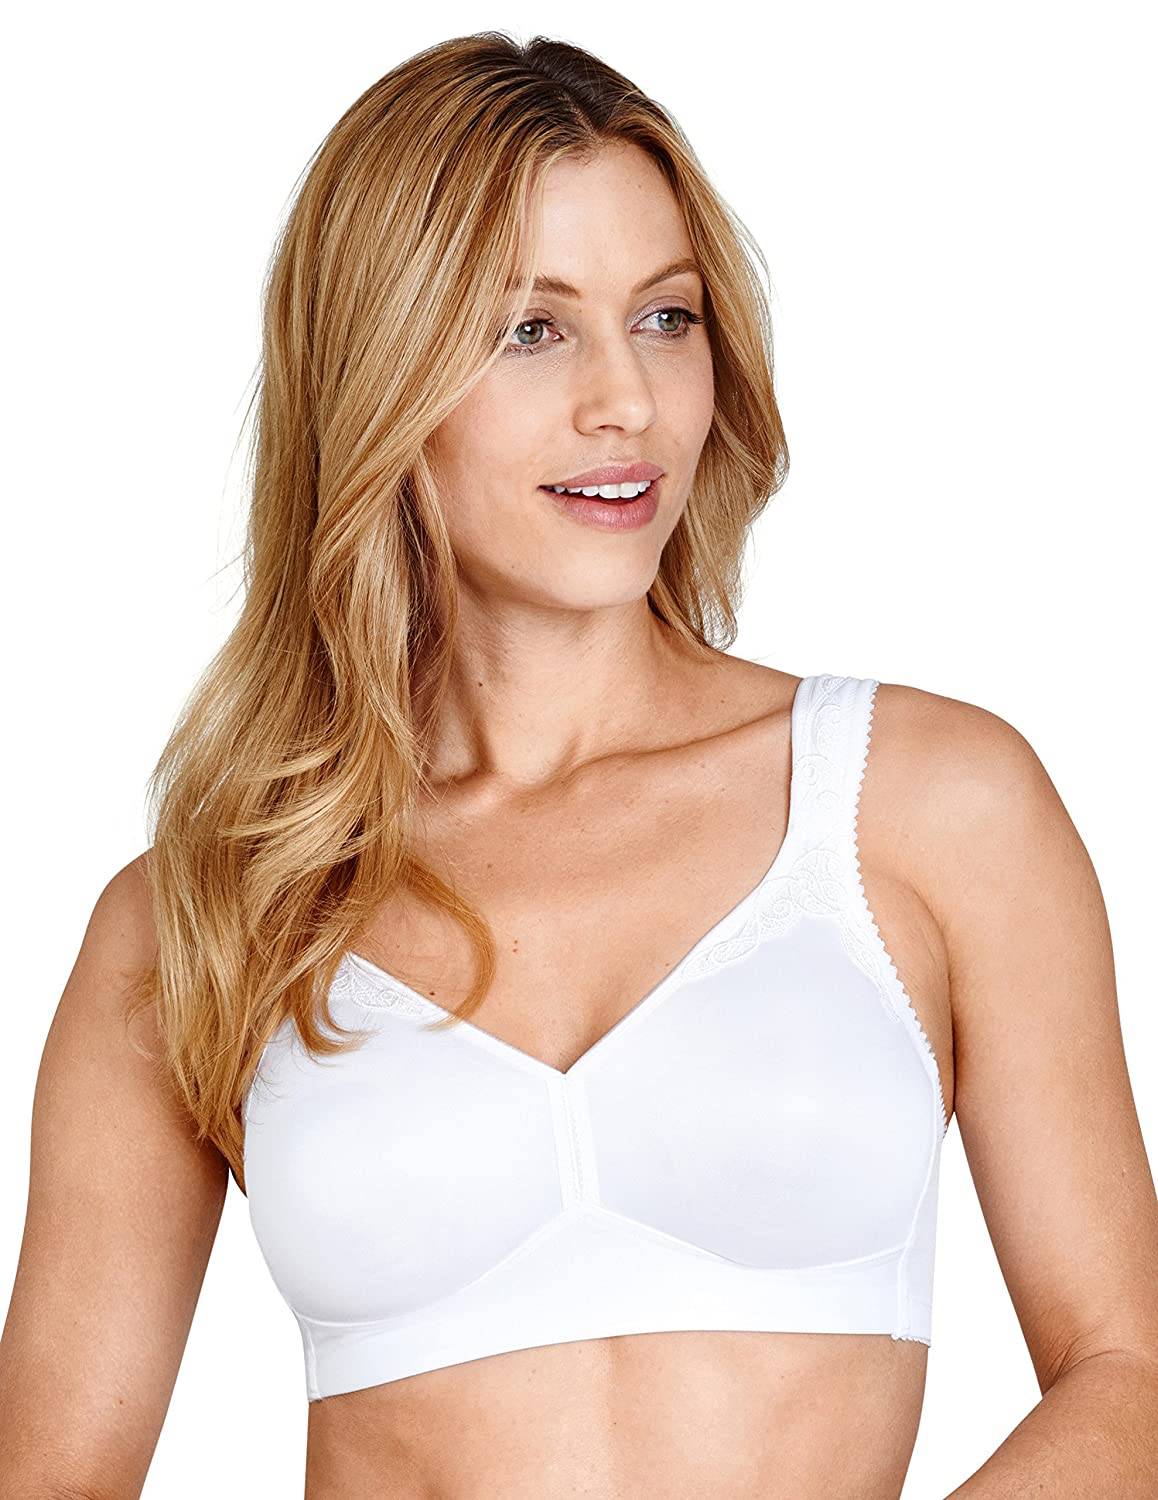 ed907e71ab Amazon.com  Miss Mary Of Sweden Smoothly Non-Wired Bra  Clothing